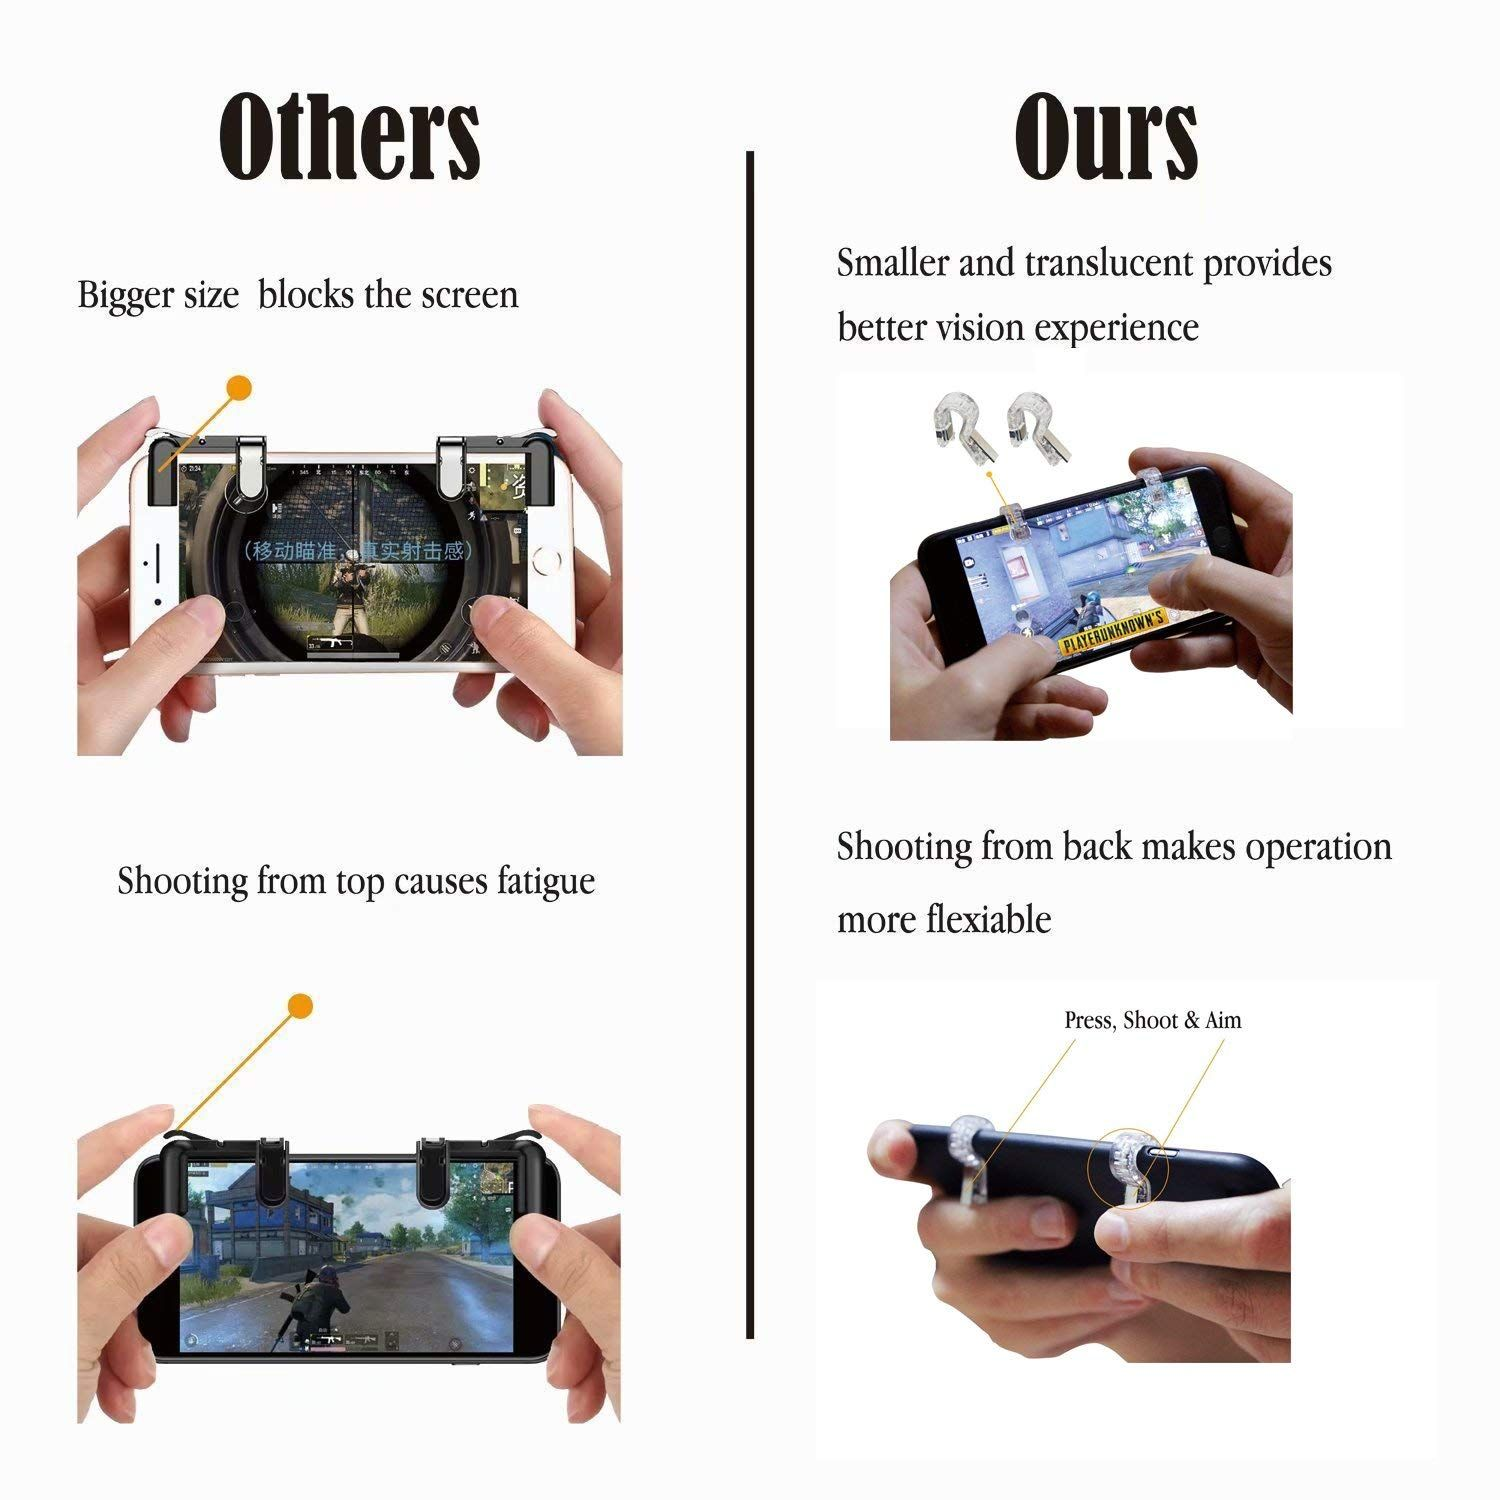 Amazon Com Pubg Mobile Controller Yatech Mobile Gaming Triggers Senstive And Aim And Shoot Buttons L1r1 Joysticks For Fortnight Knives Out Joystick Mobile Aim